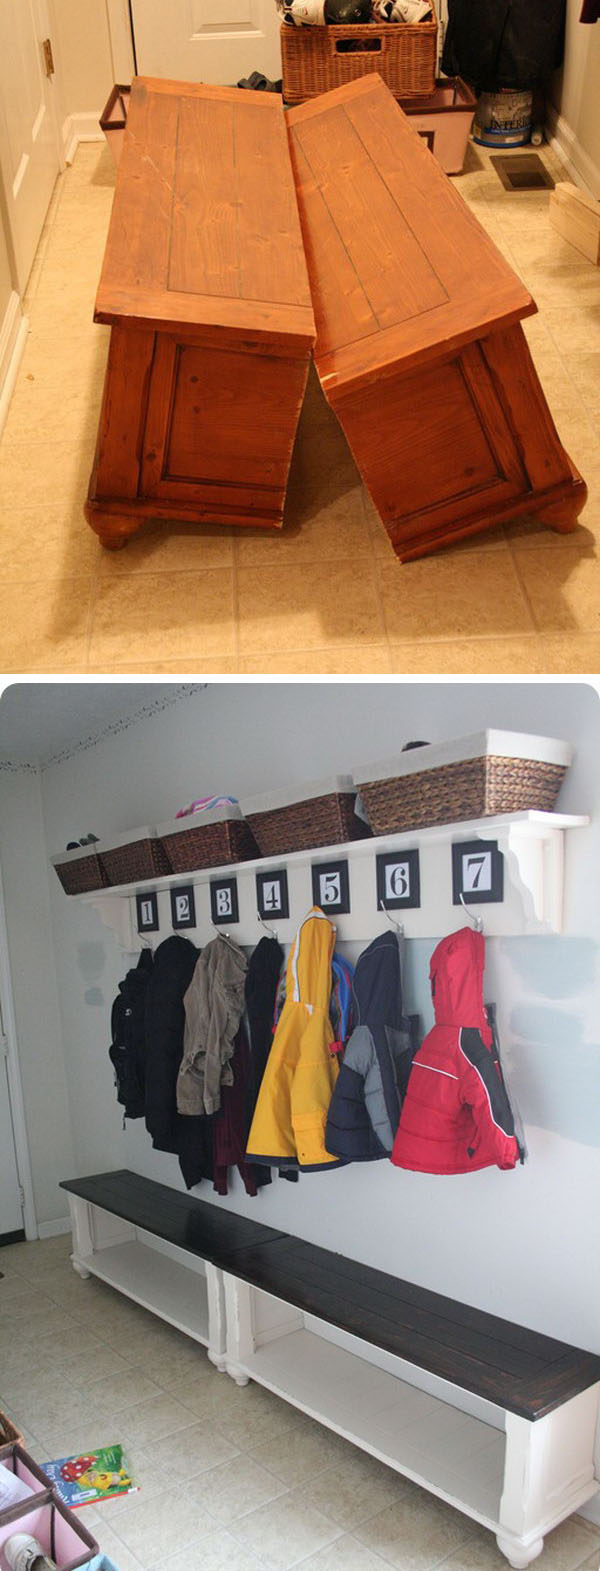 DIY Mudroom Bench from an Old Coffee Table .